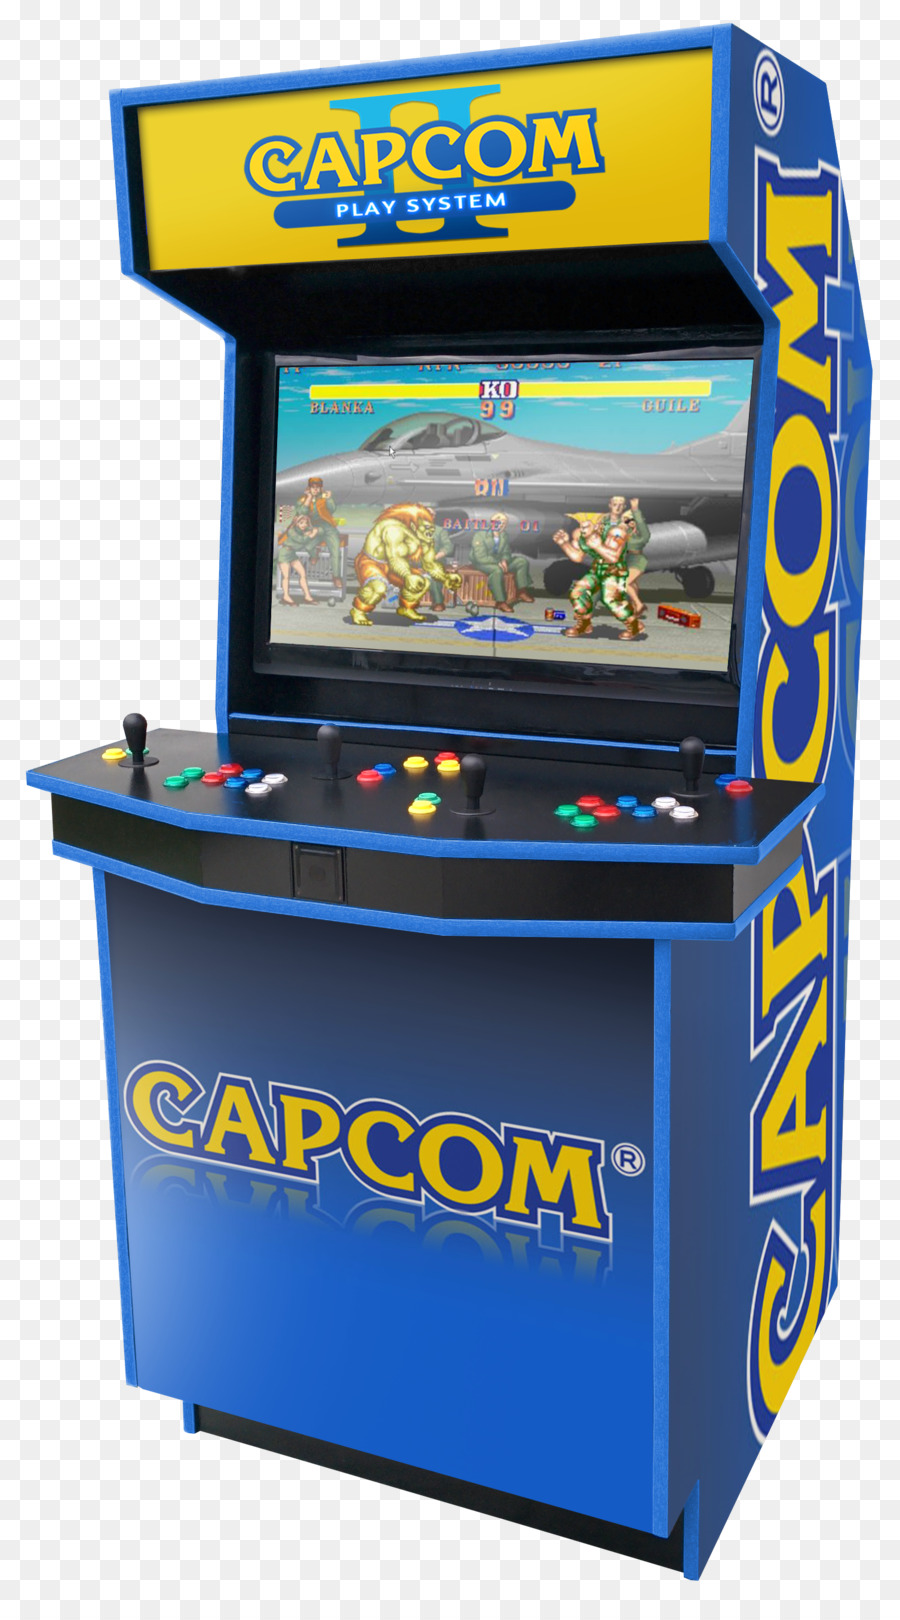 Arcade Cabinet Technology png download.